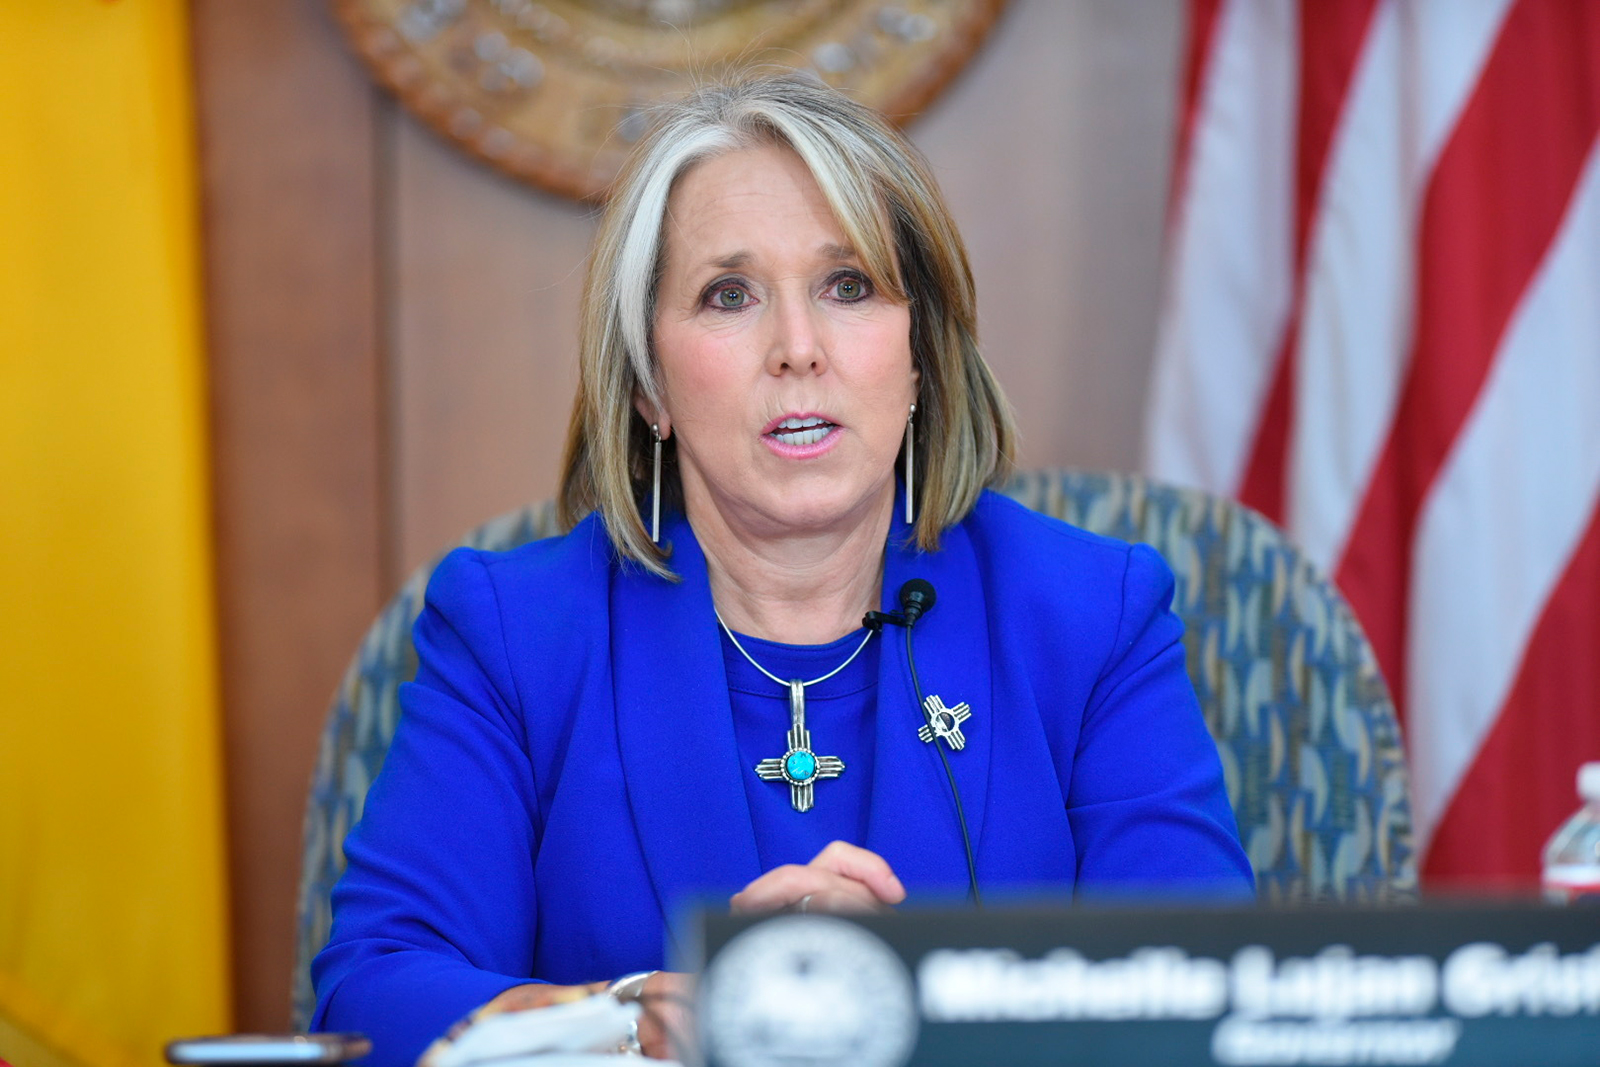 New Mexico Gov. Michelle Lujan Grisham speaks about the uptick in confirmed Covid-19 cases in the state and her decision to hold off on opening more of the economy during a news conference at the state Capitol in Sante Fe on Thursday, June 25.